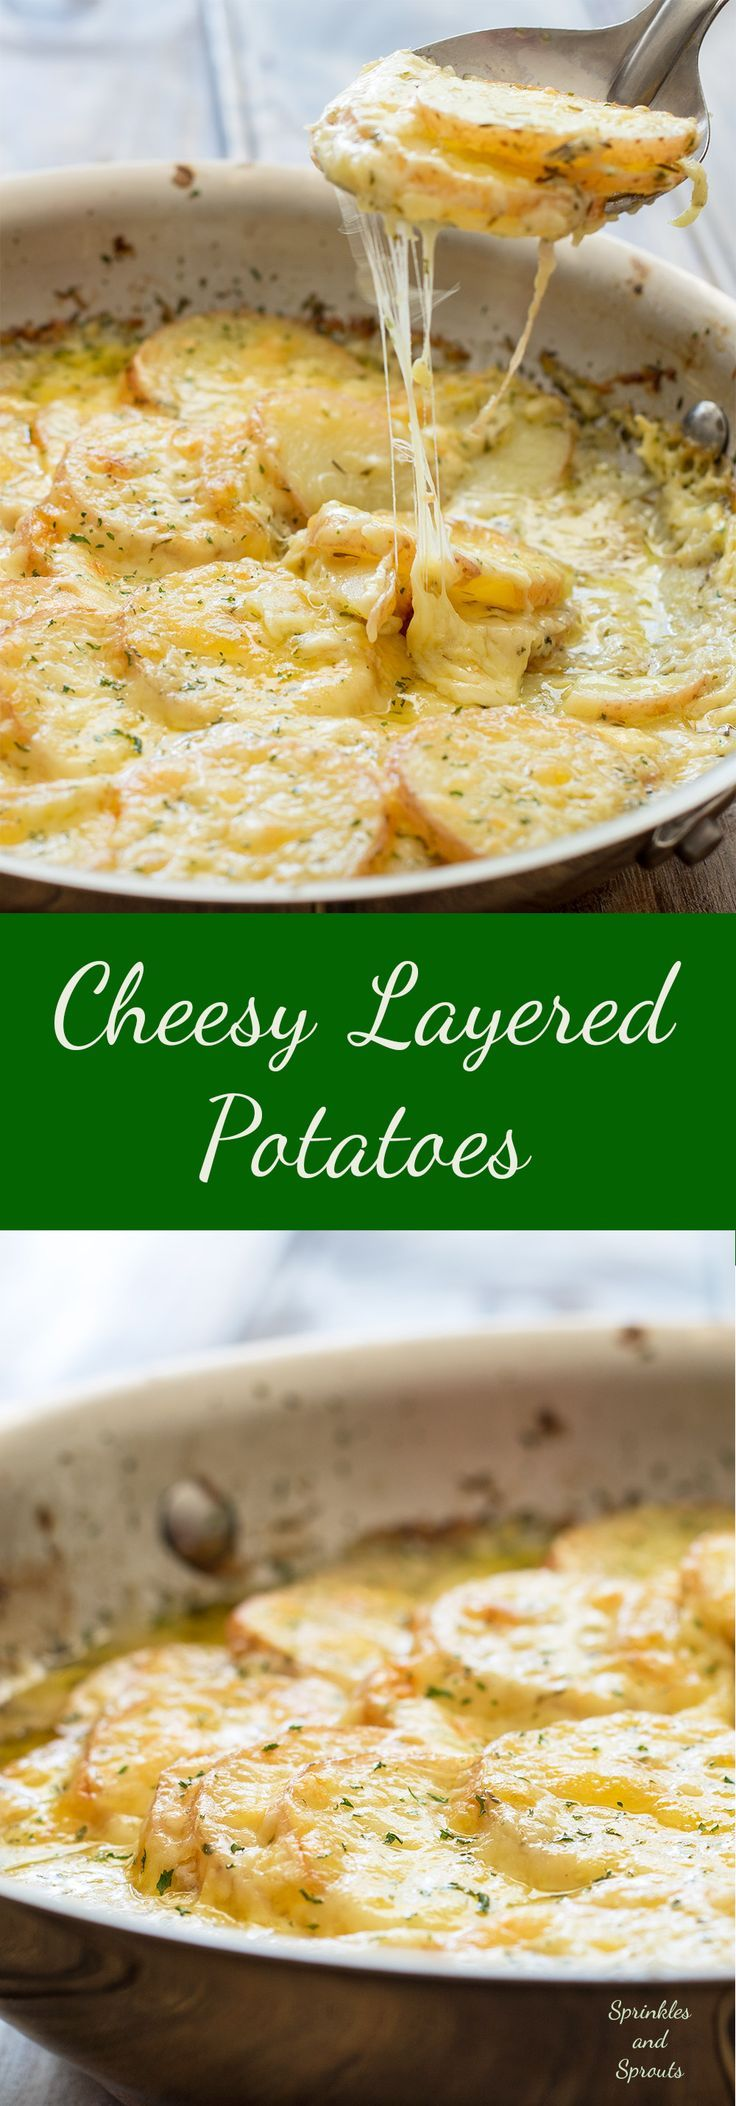 Cheesy Layered Potatoes. Potatoes, cream and cheese. Seriously what could be better? Layers of potato and onion cooked in cream and stock until tender and then smothered in cheese and baked to a melty, creamy perfection. This is comfort food at it's very best!